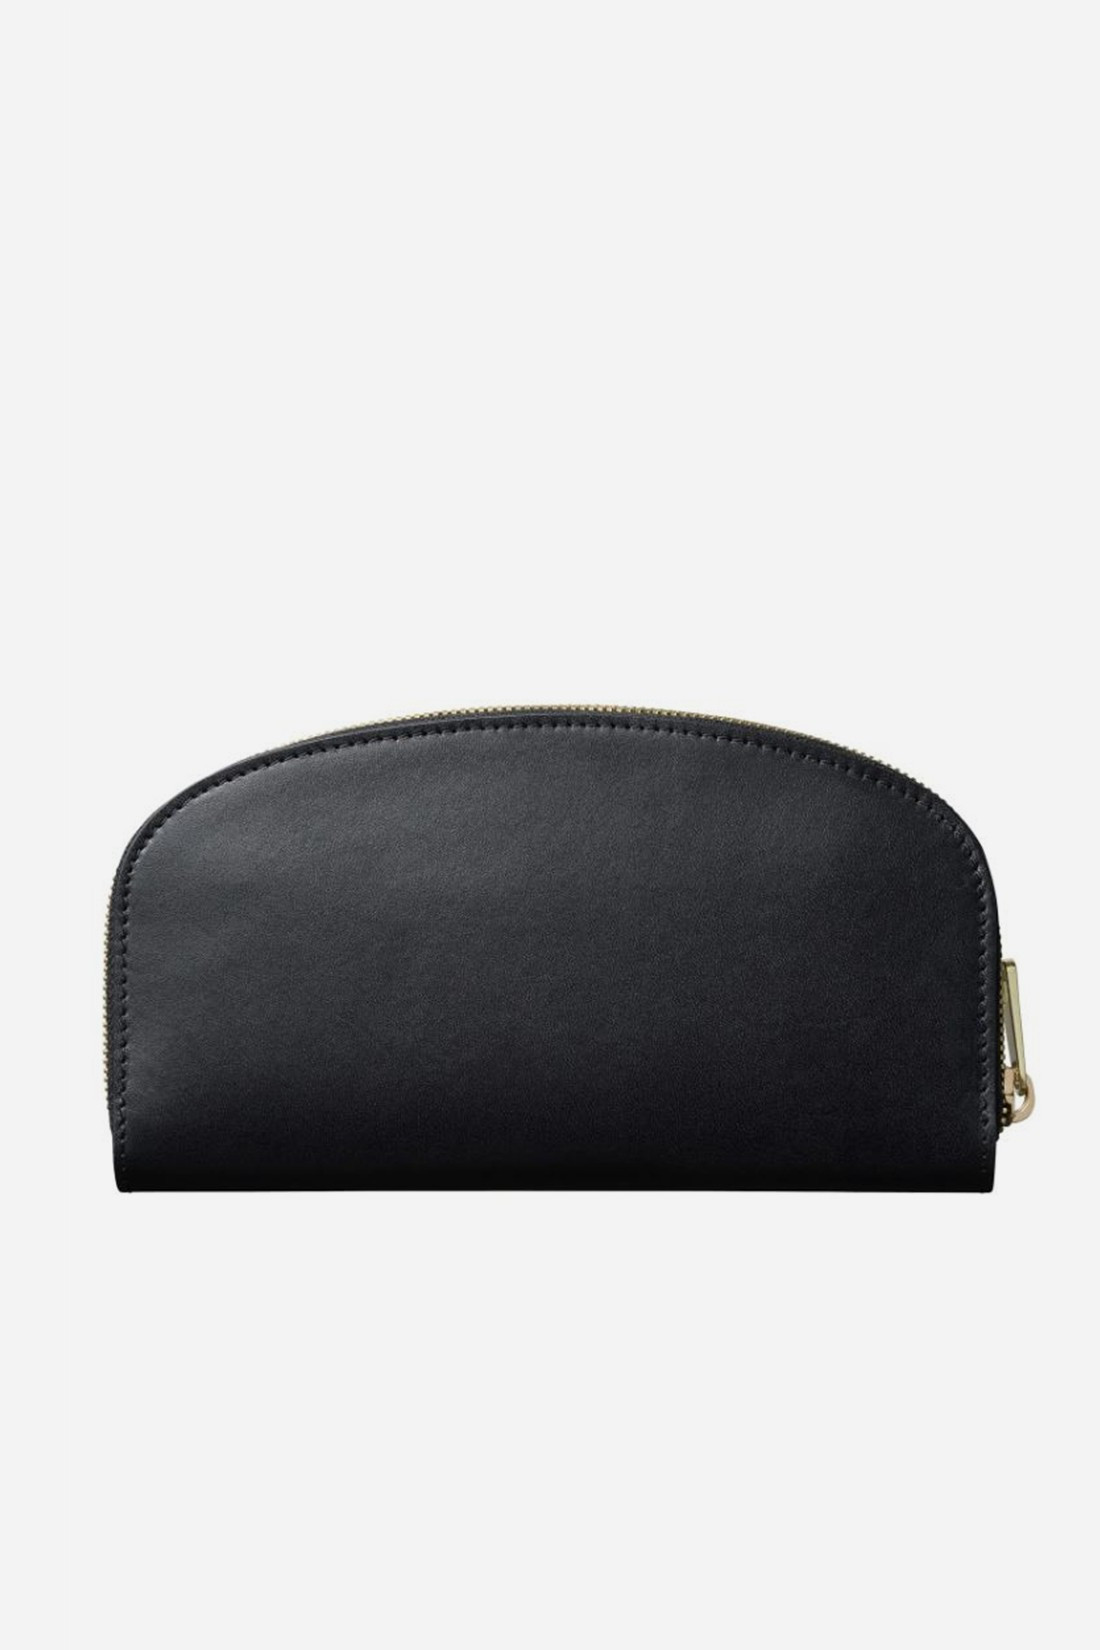 A.P.C. FOR WOMAN / Portefeuille demi-lune Noir